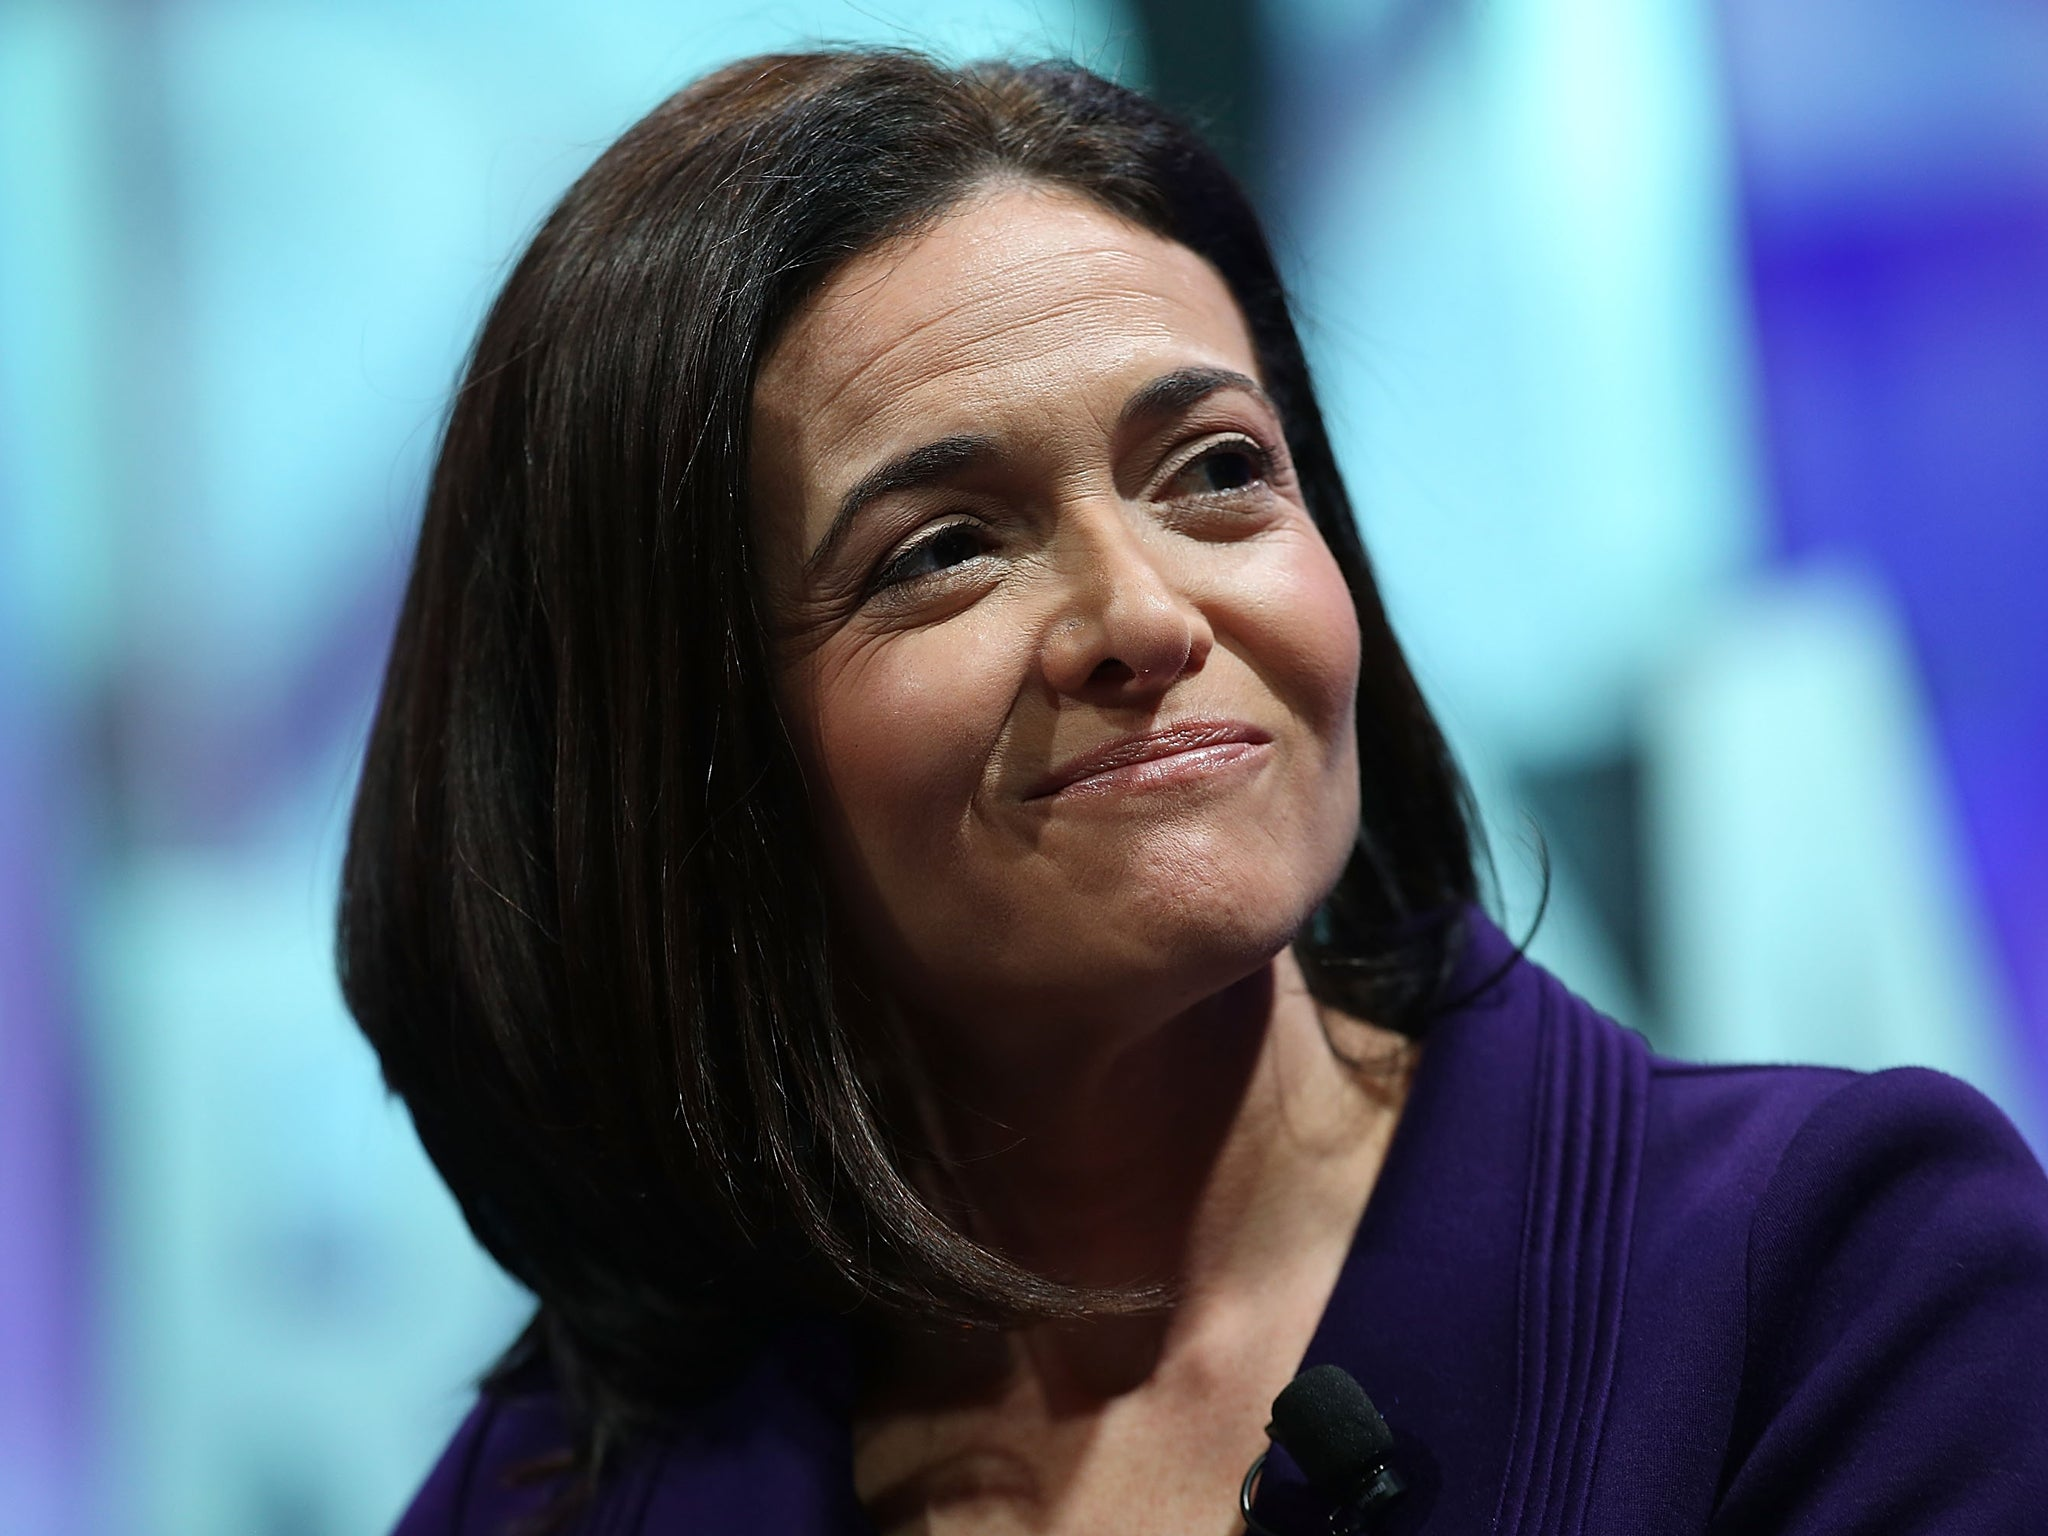 women on maternity leave face reduced hours and being made sheryl sandberg wants better workplace policies for single mothers